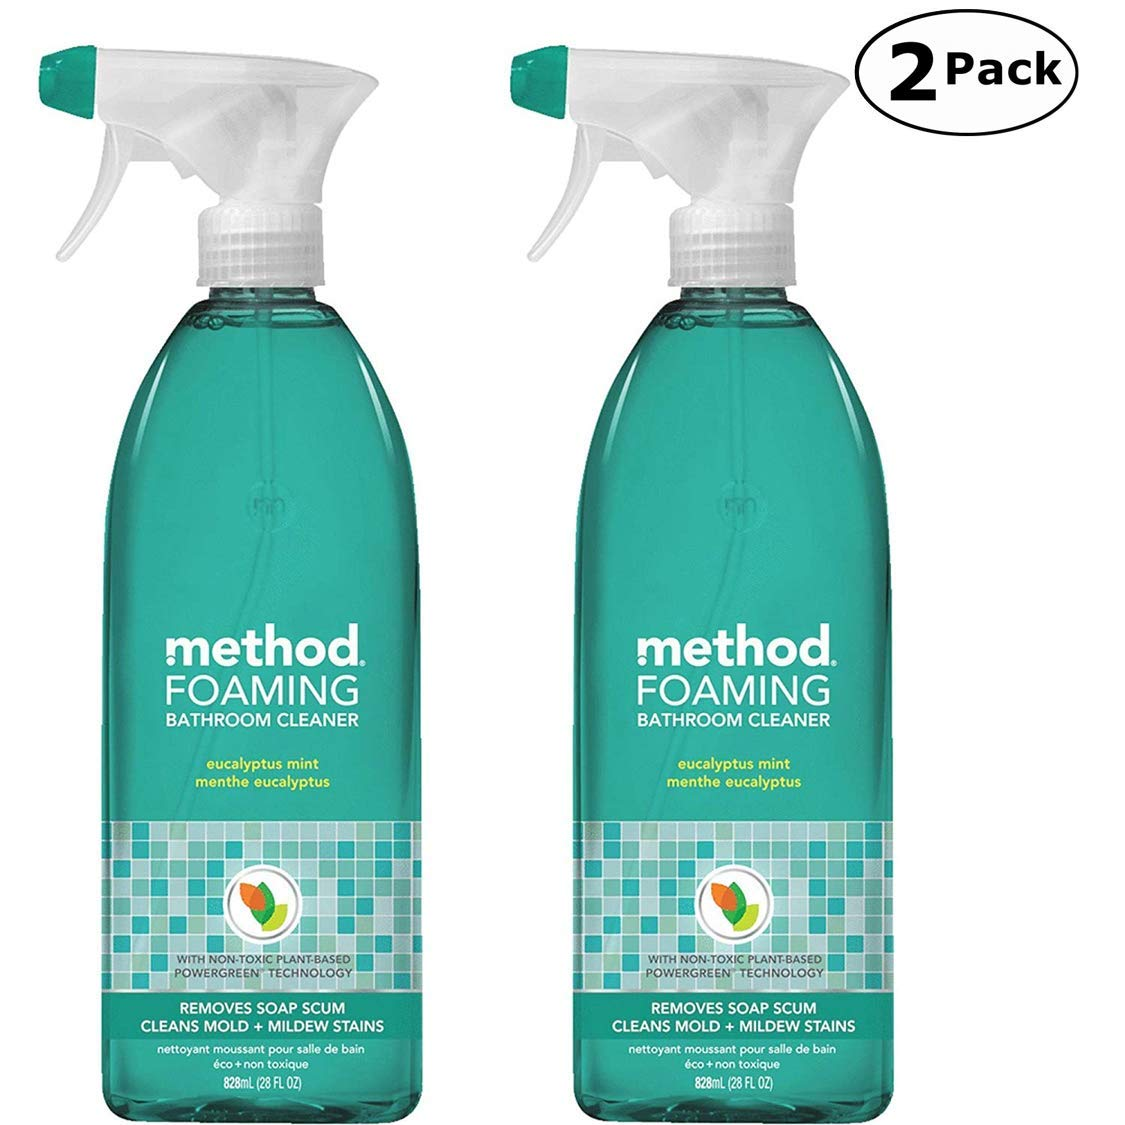 Method Naturally Derived Foaming Bathroom Cleaner Spray, Eucalyptus Mint, 28 FL Oz Twin Pack (28 x 2, Total 56 Oz) by Method